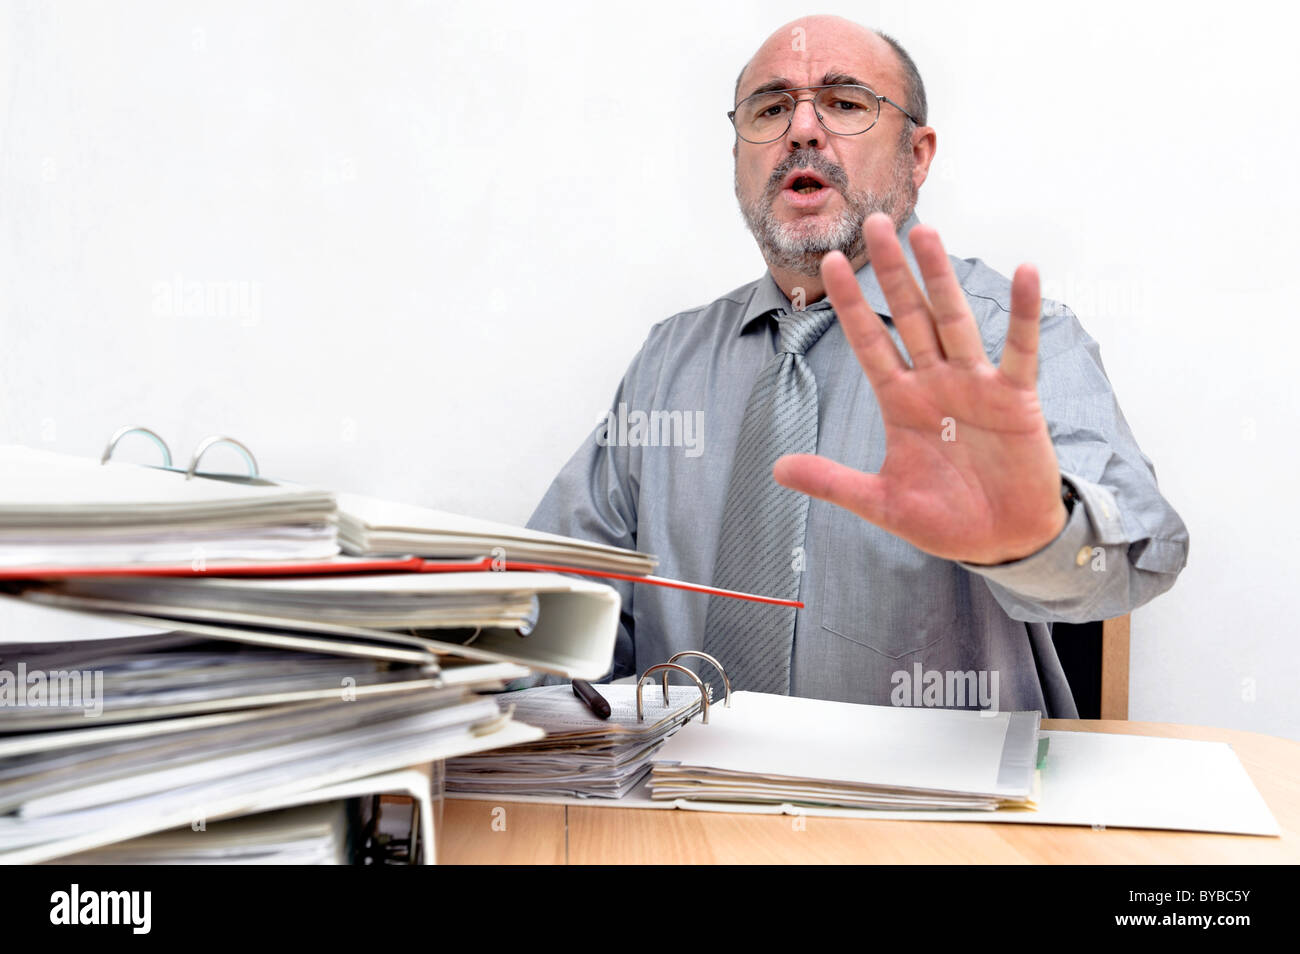 A clerk making a negative gesture - Stock Image